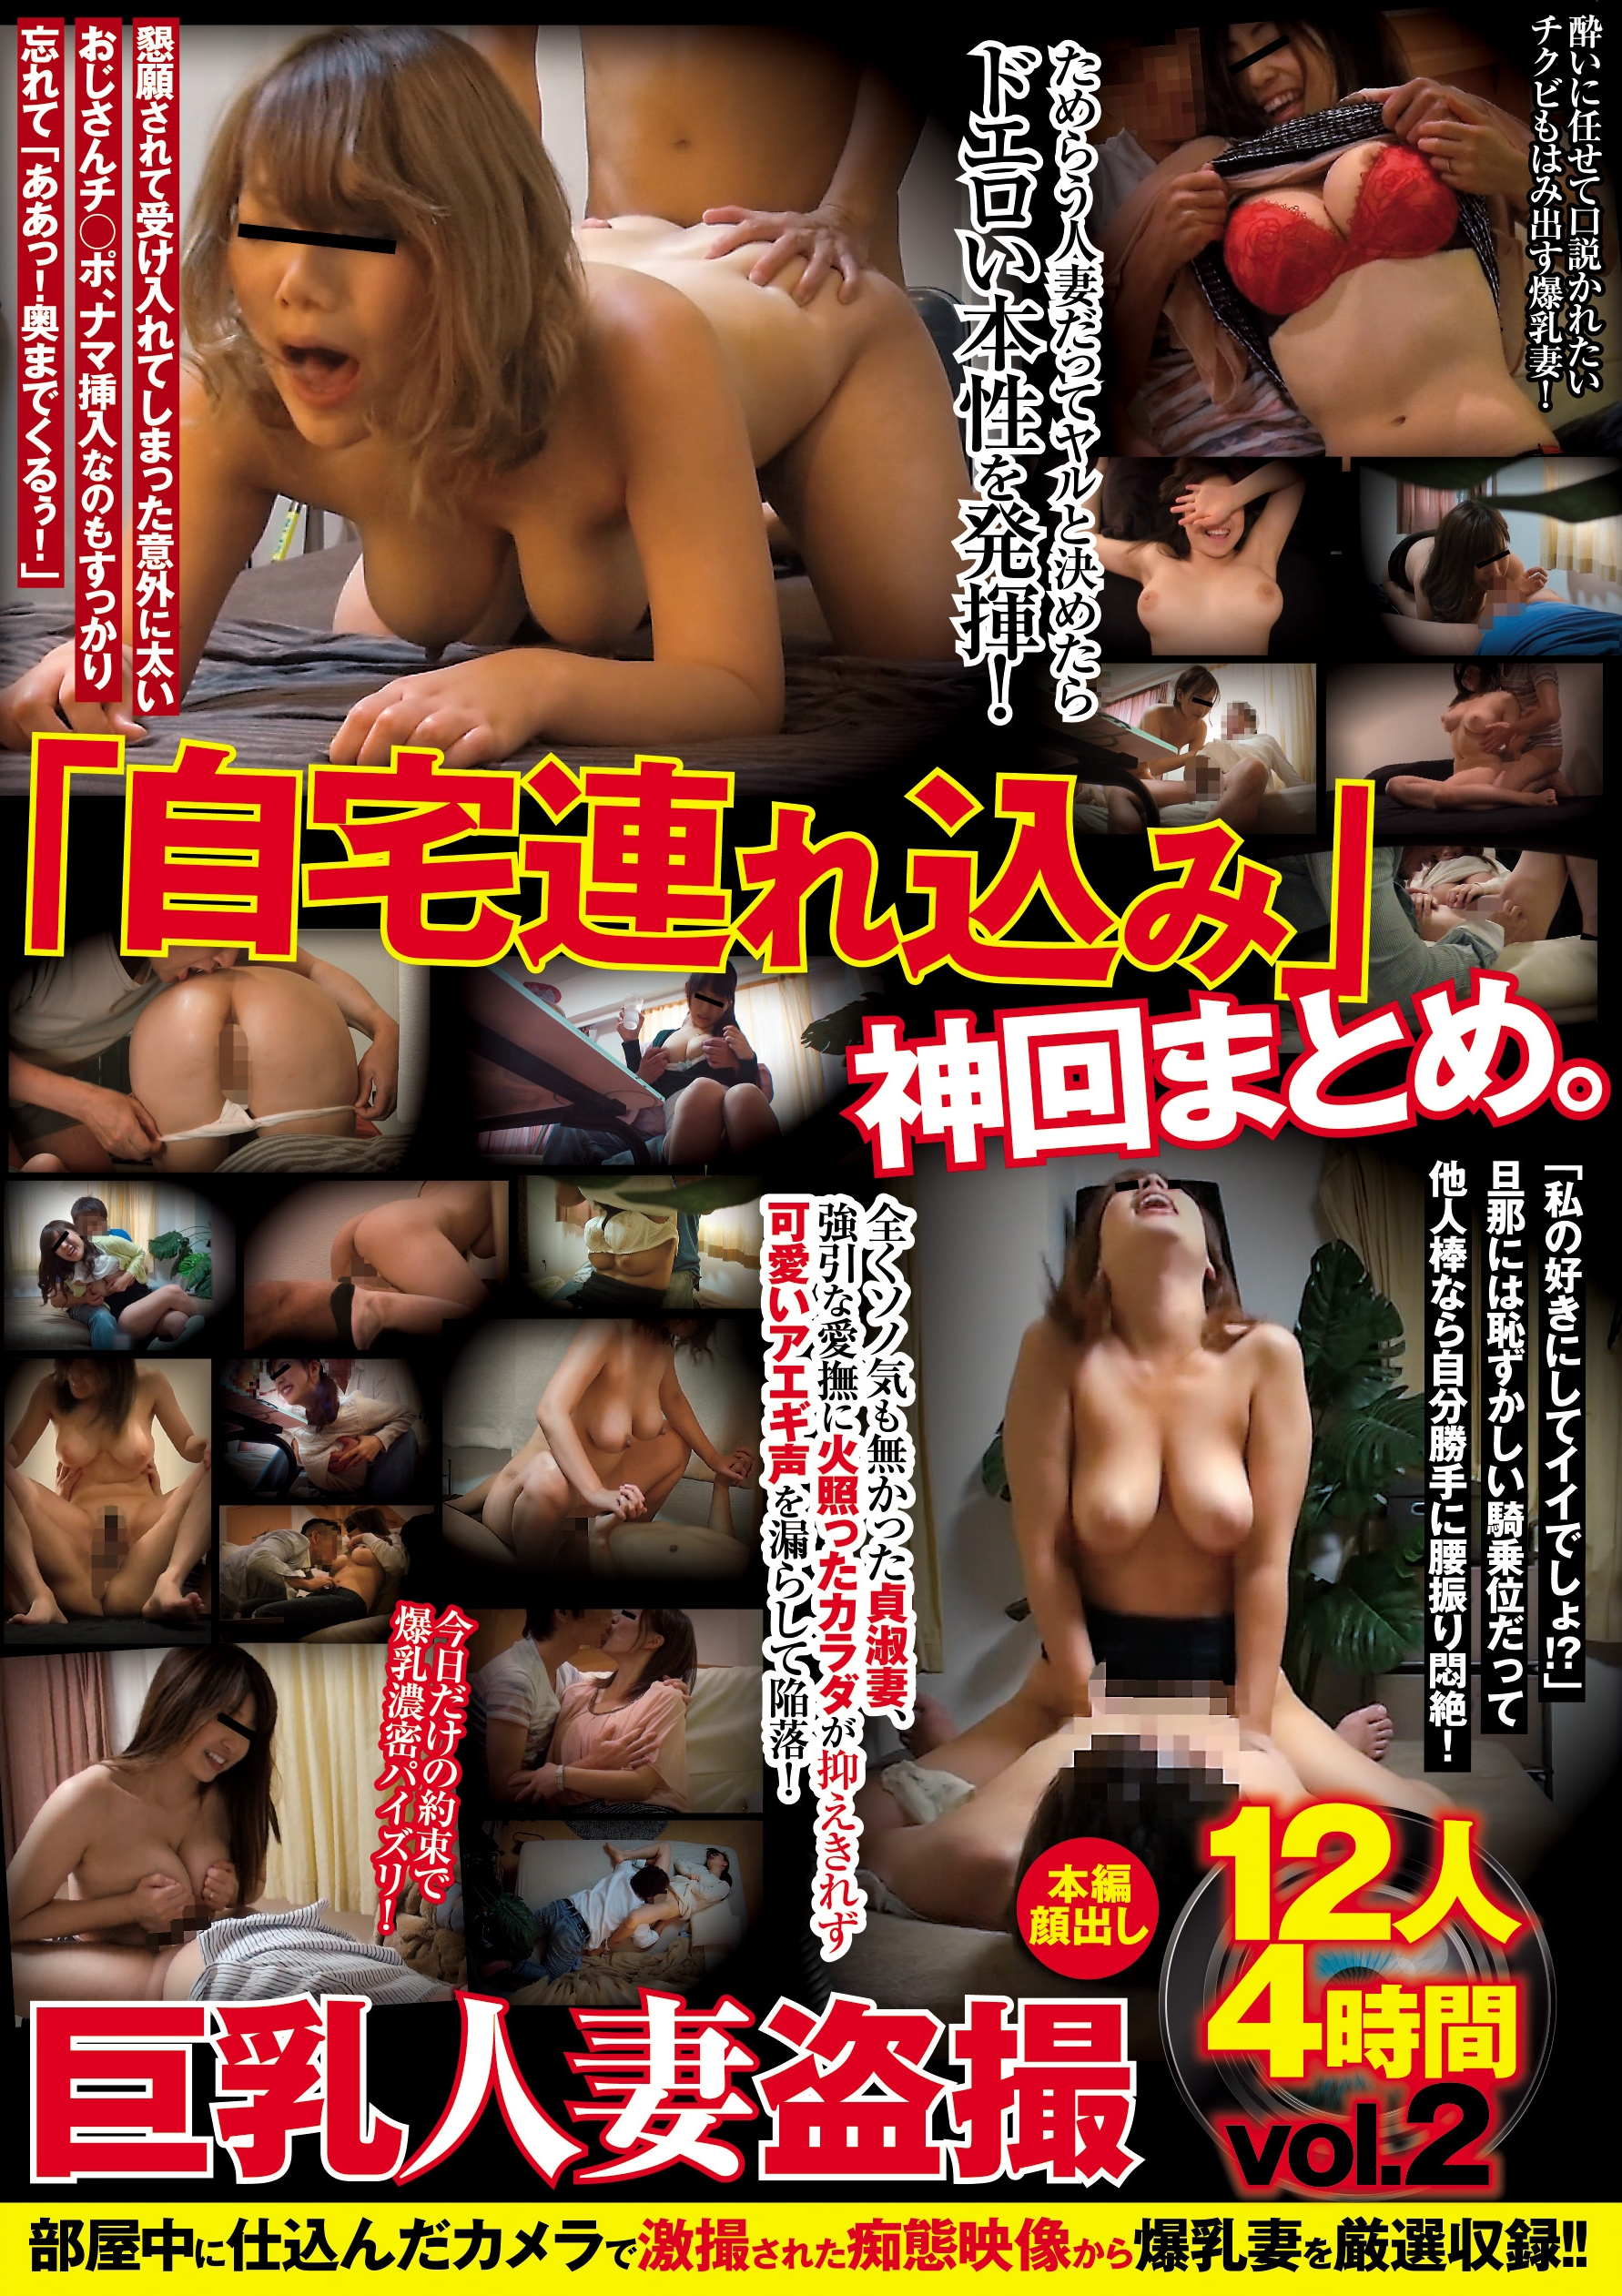 'Lured To Home', Put Together Goddess Titles, 12 Large Breasts Married Women, 4 Hours Vol. 2